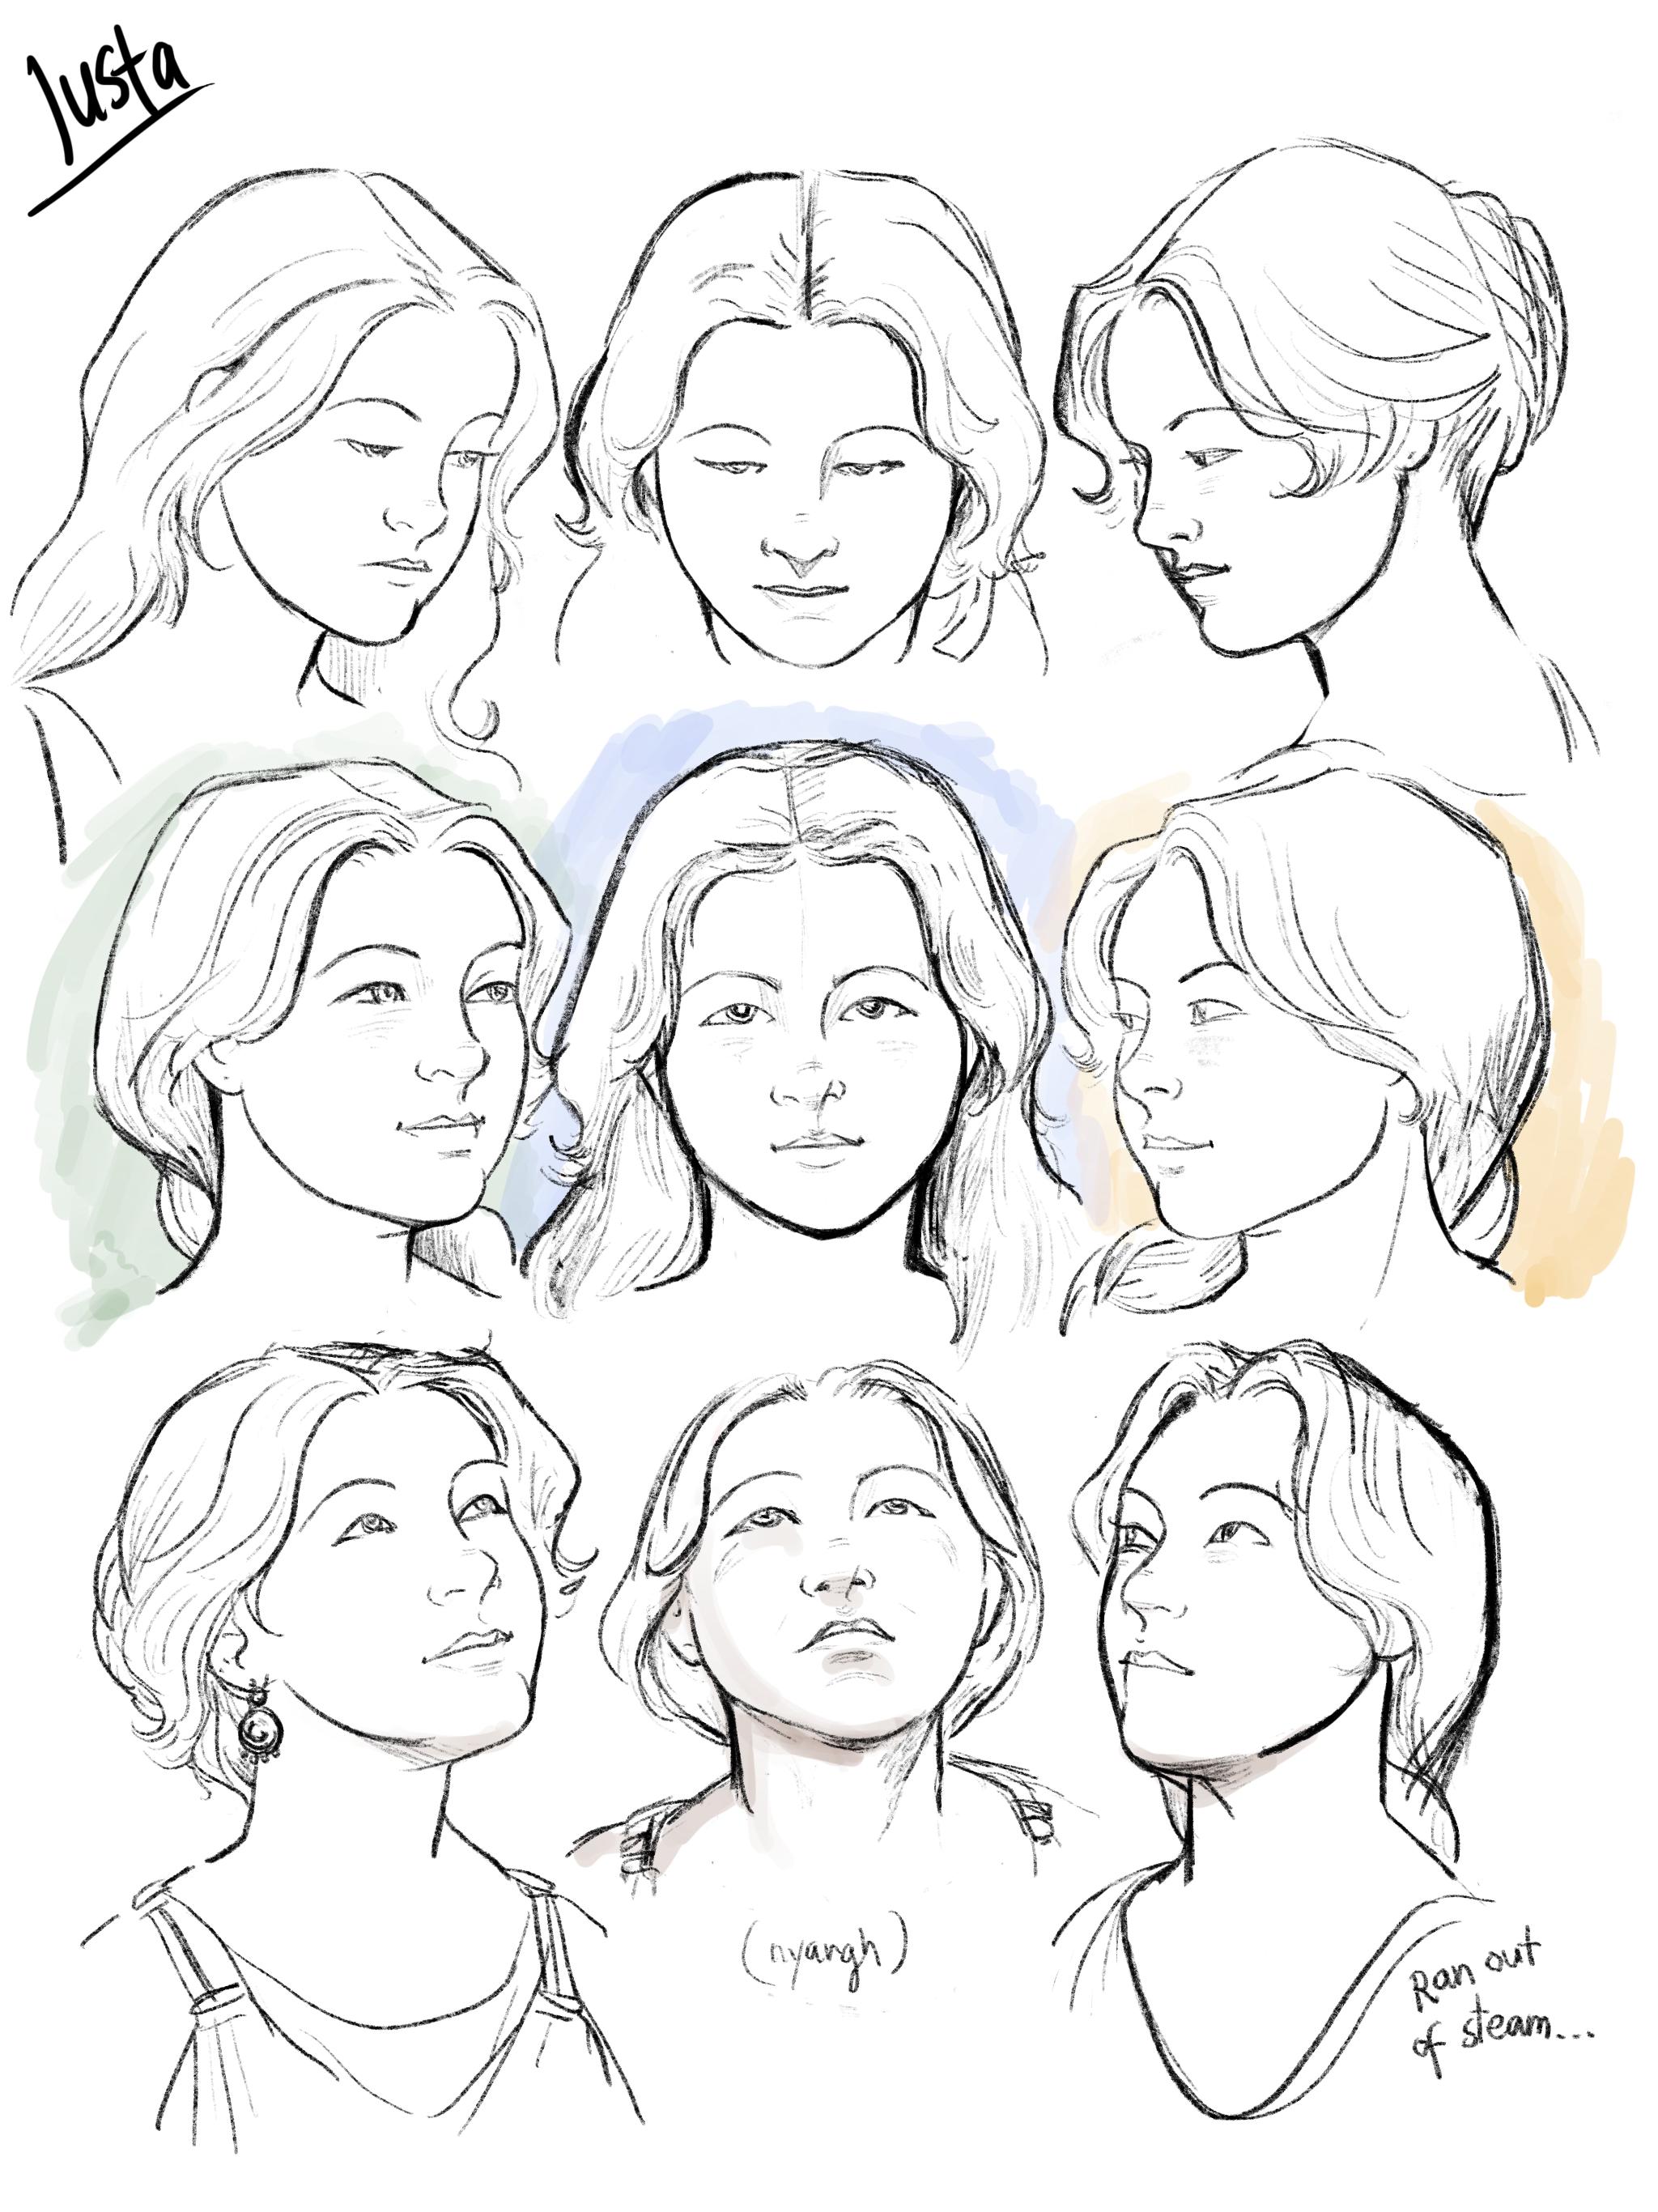 Head studies: Iusta